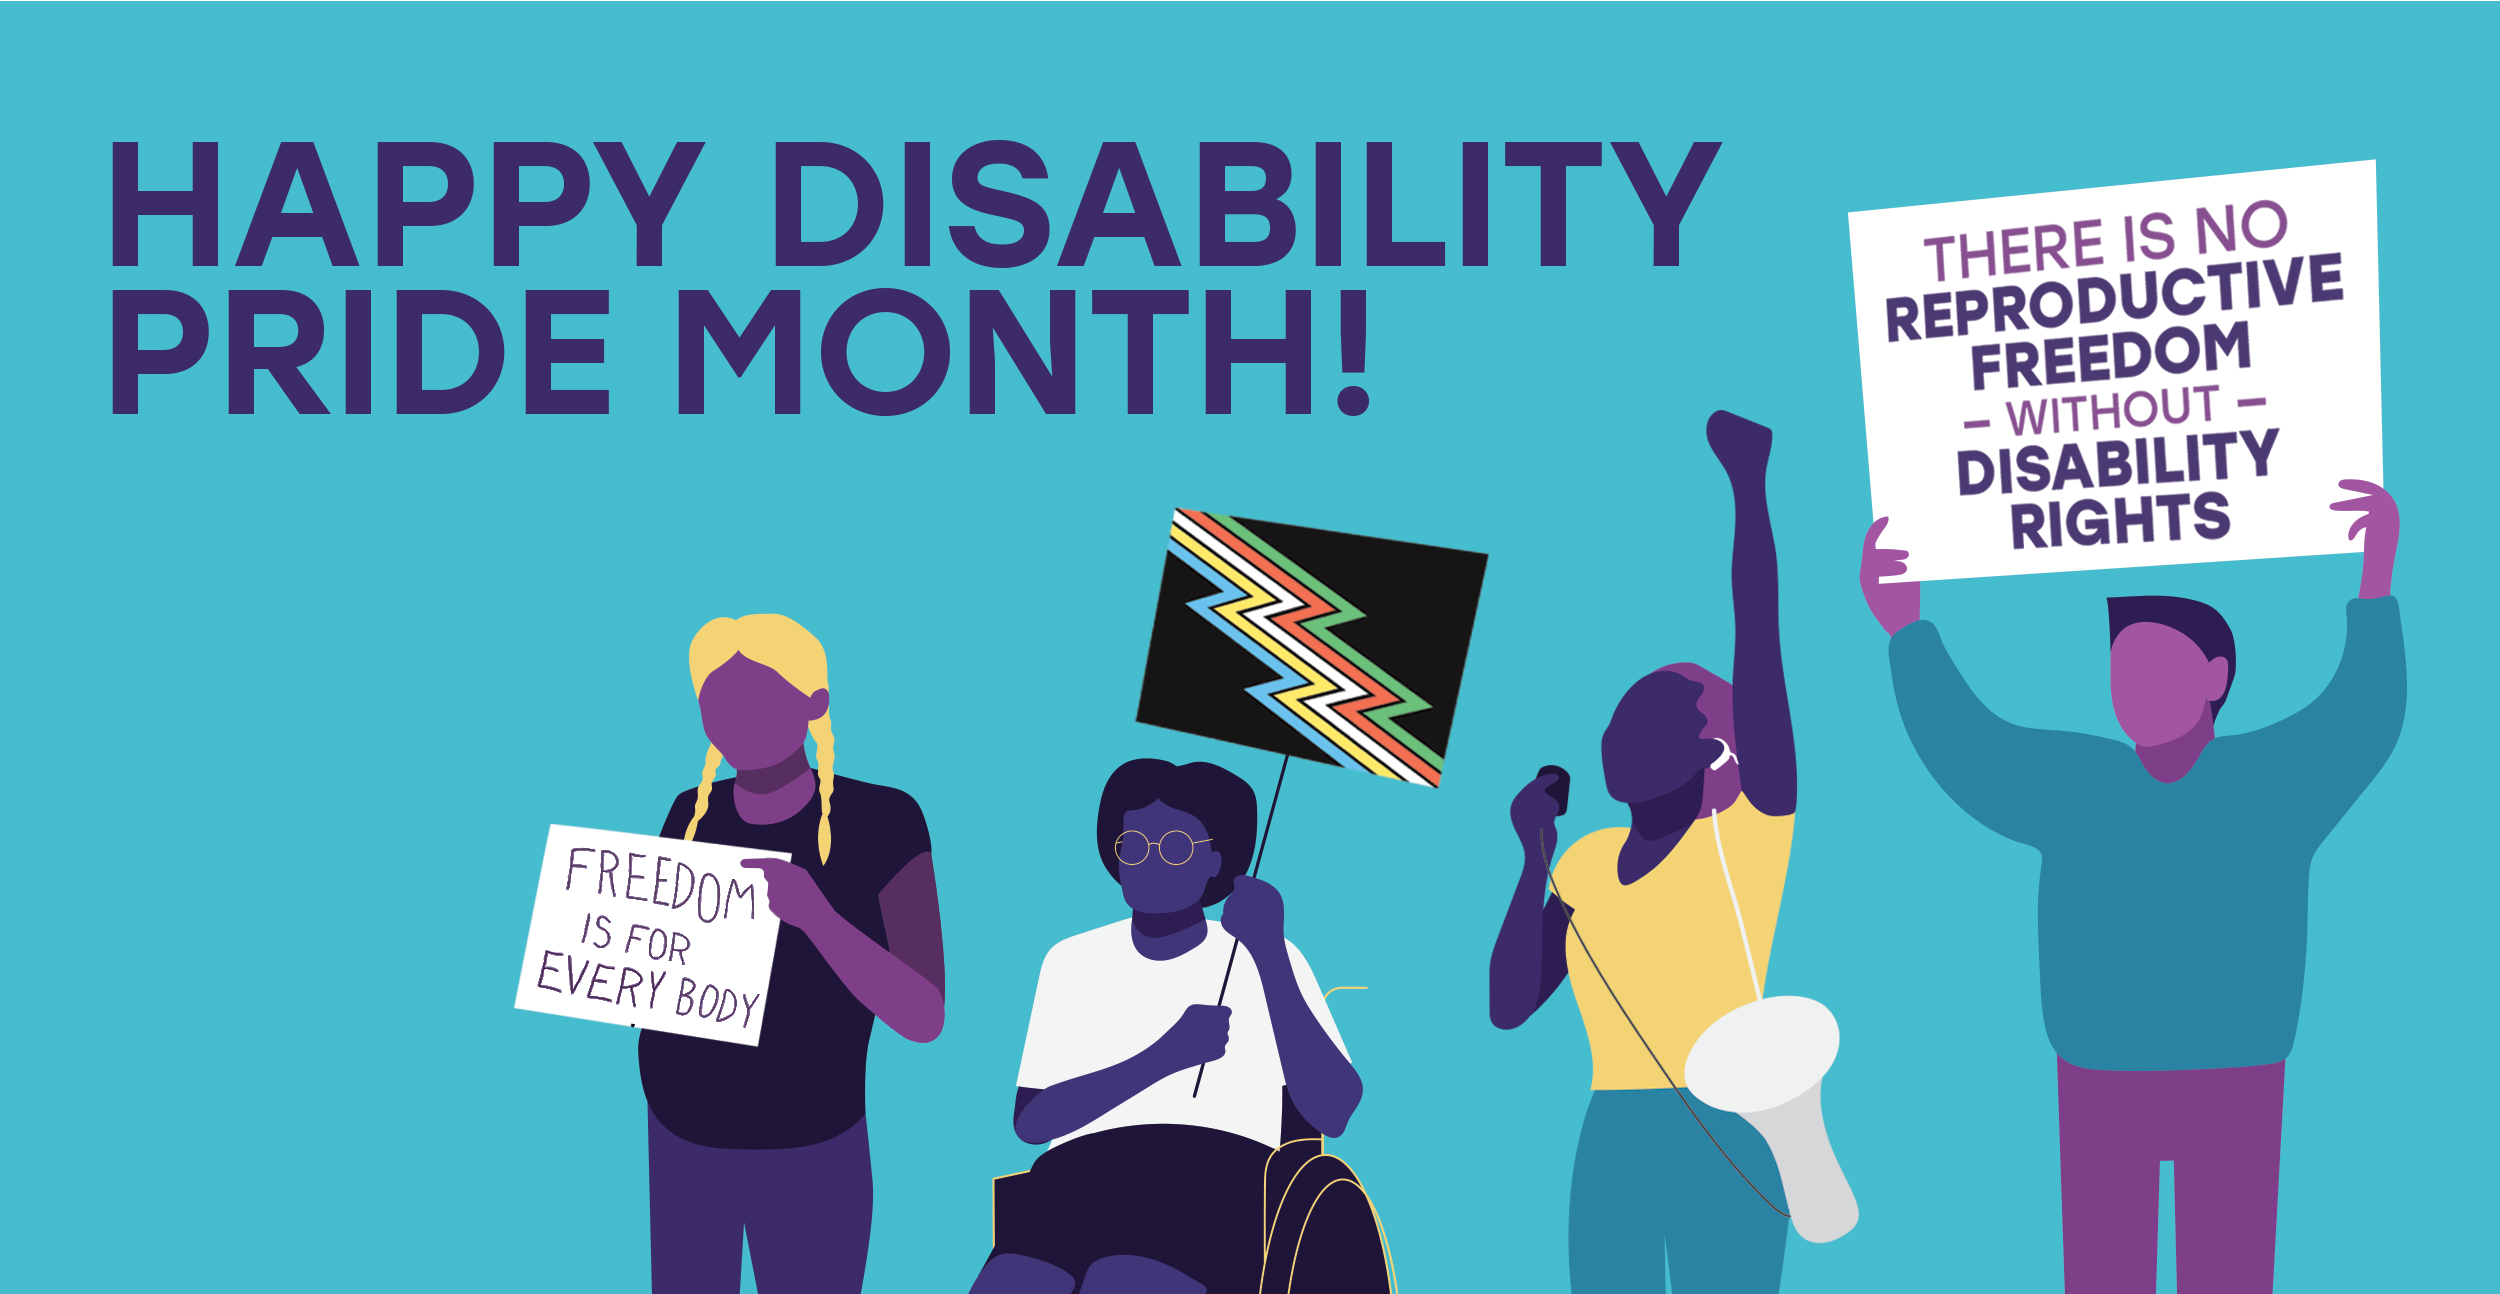 Happy Disability Pride Month! Graphic of people holding signs that read: 'There is no reproductive freedom without disability rights' and 'Freedom is for Every Body'